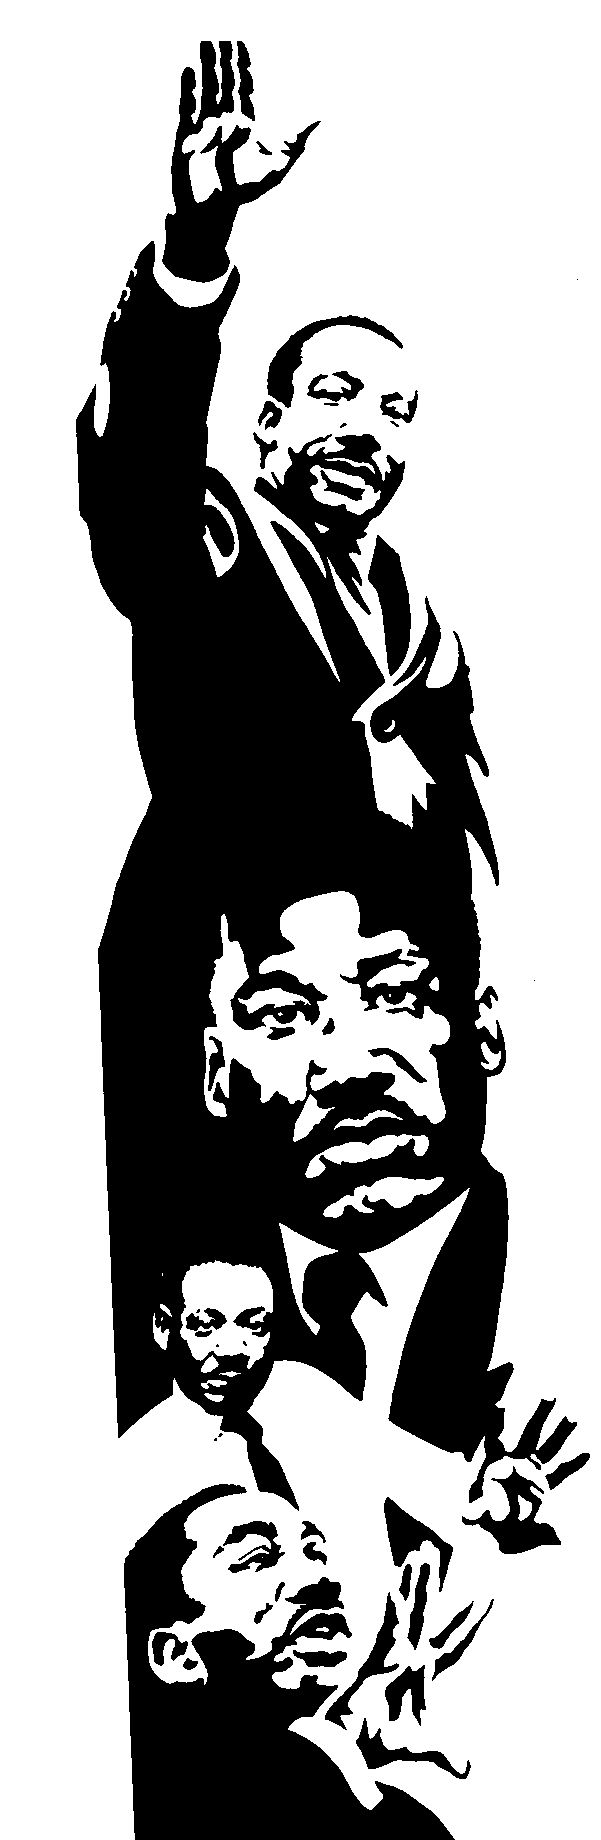 martin luther king jr black and white clipart #12